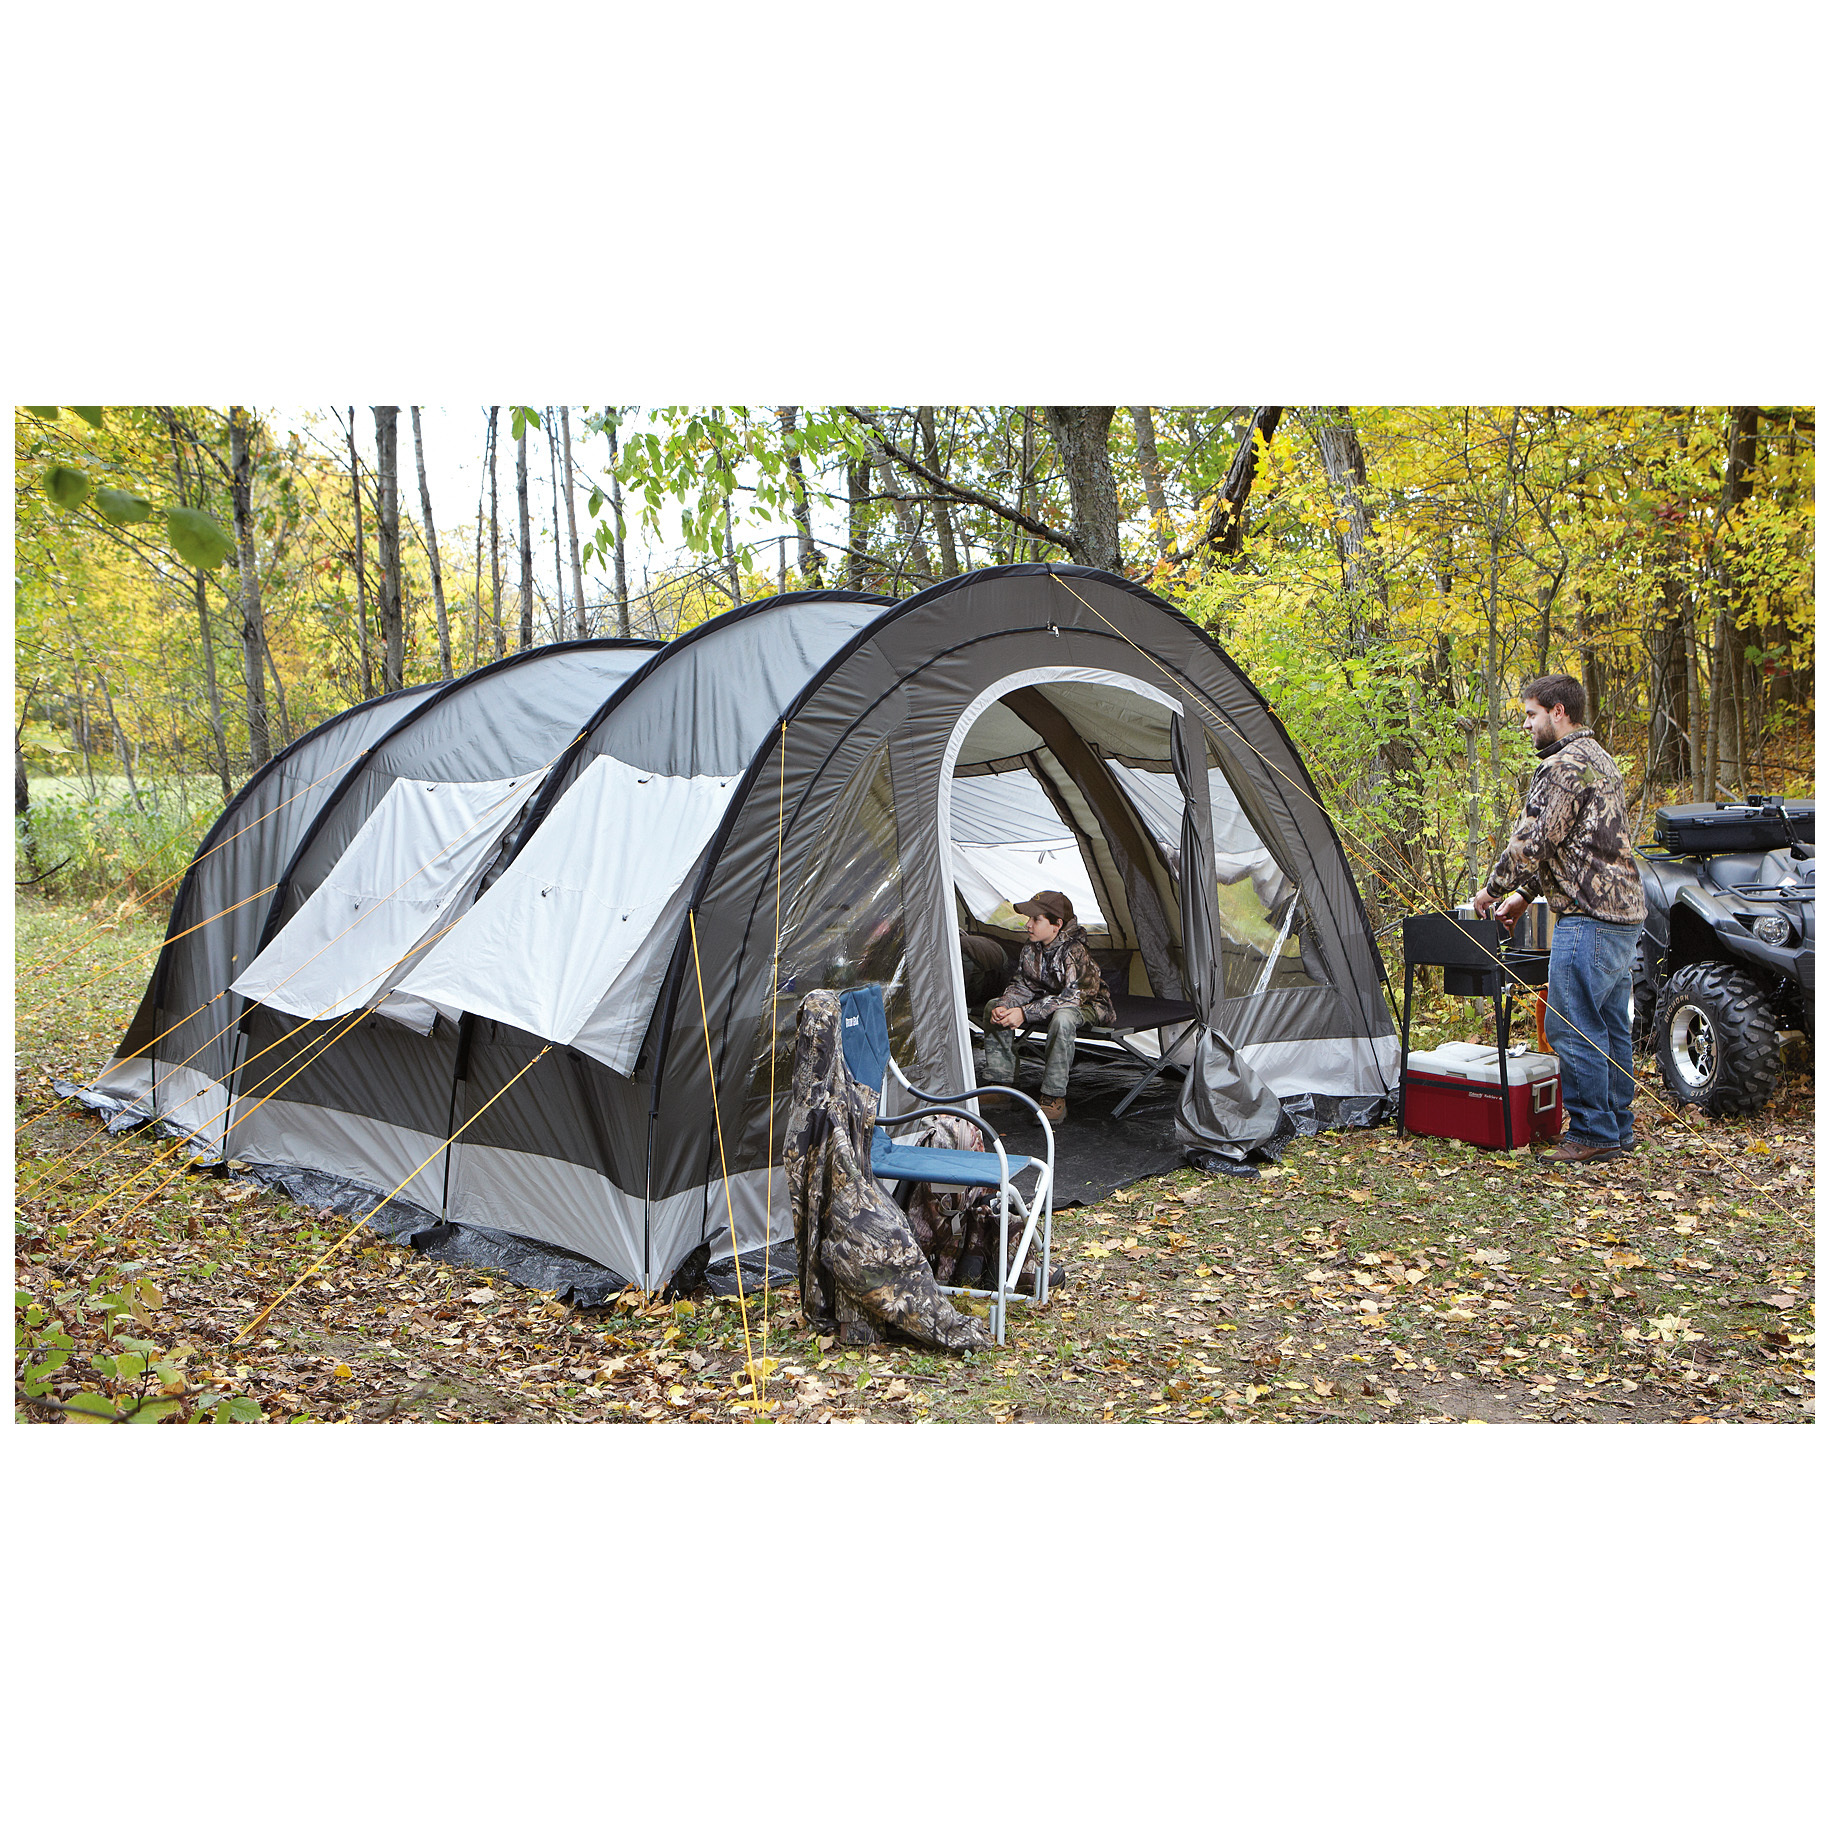 sc 1 st  Thrill On & Guide Gear Base Camp 10 Tent - $199.99 - Thrill On